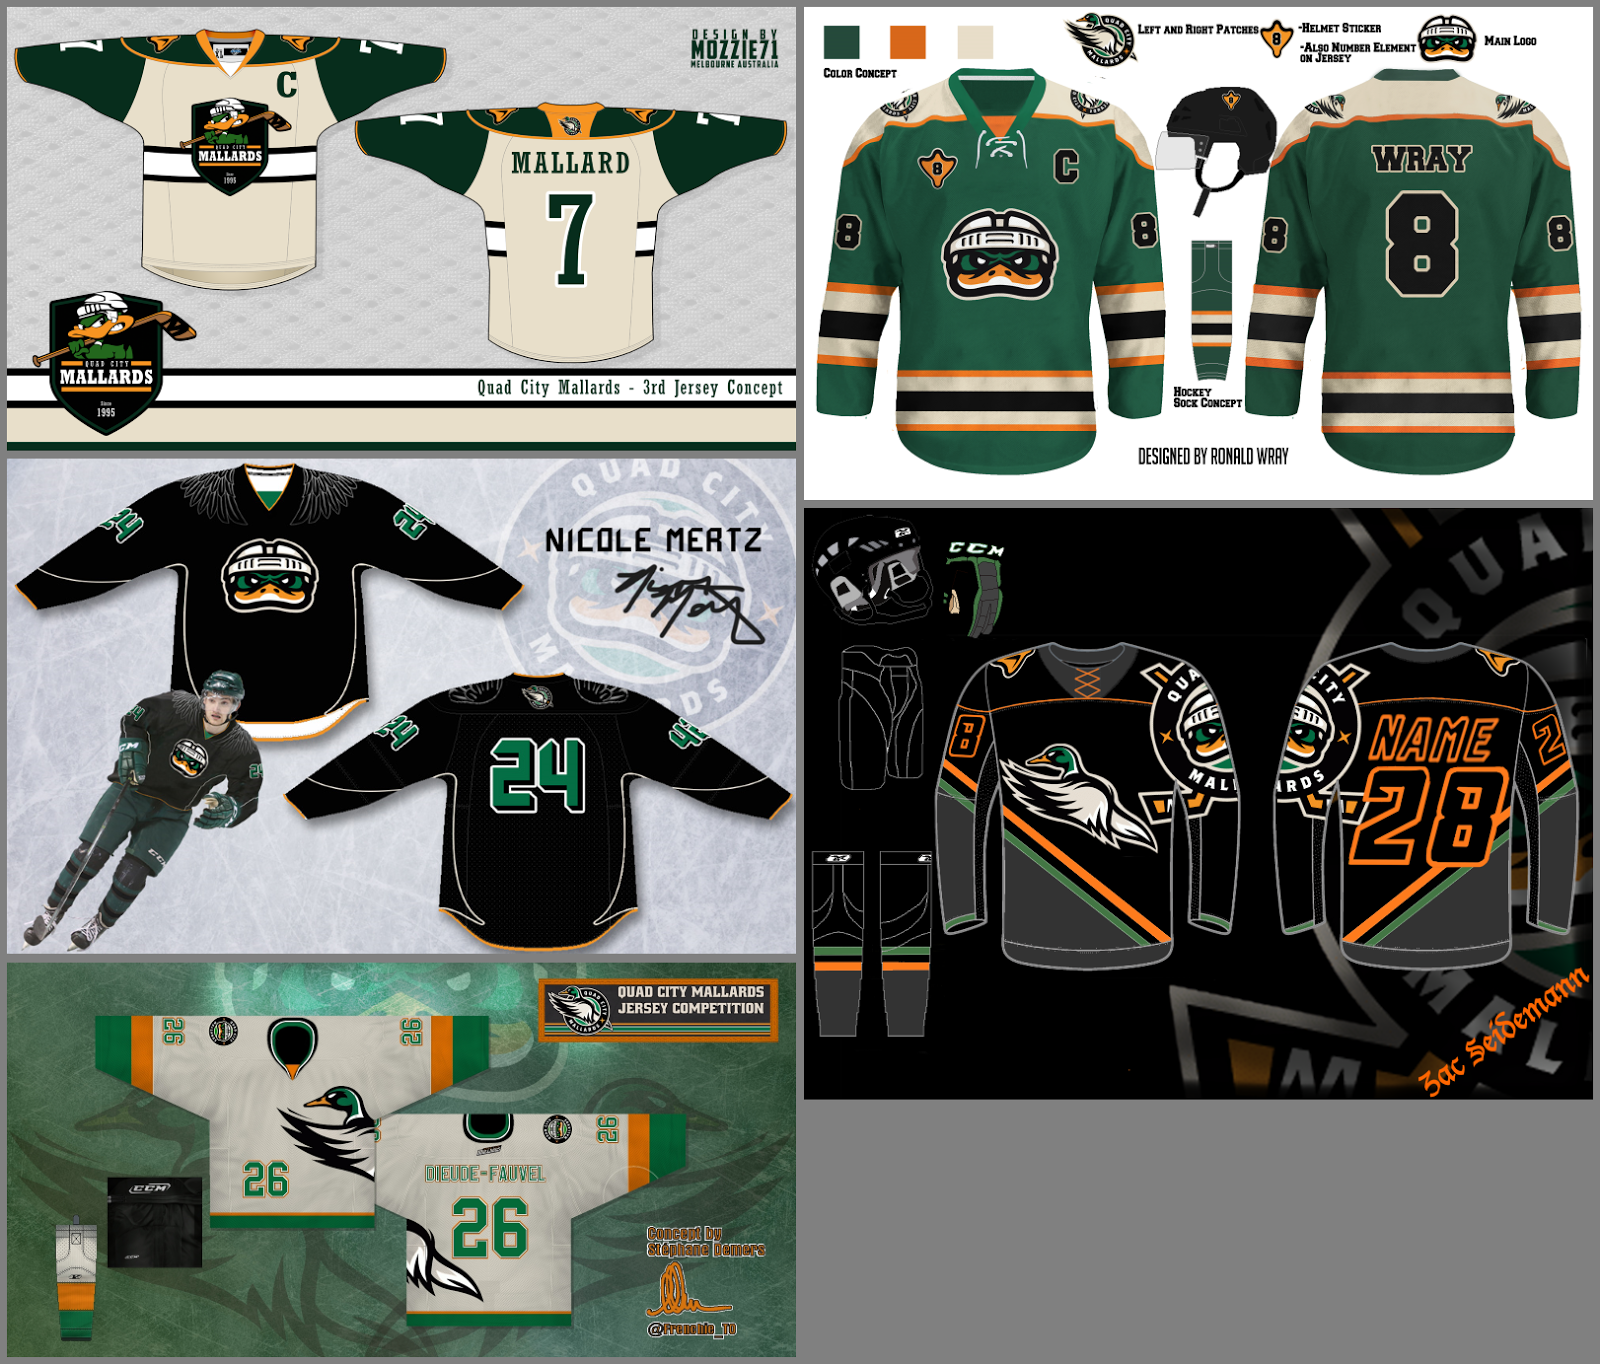 T shirt design quad cities - Based On The People That I Heard From Reaction Was Mostly Negative Just Remember That This Was The Mallards Competition And Without Any Guidelines As To